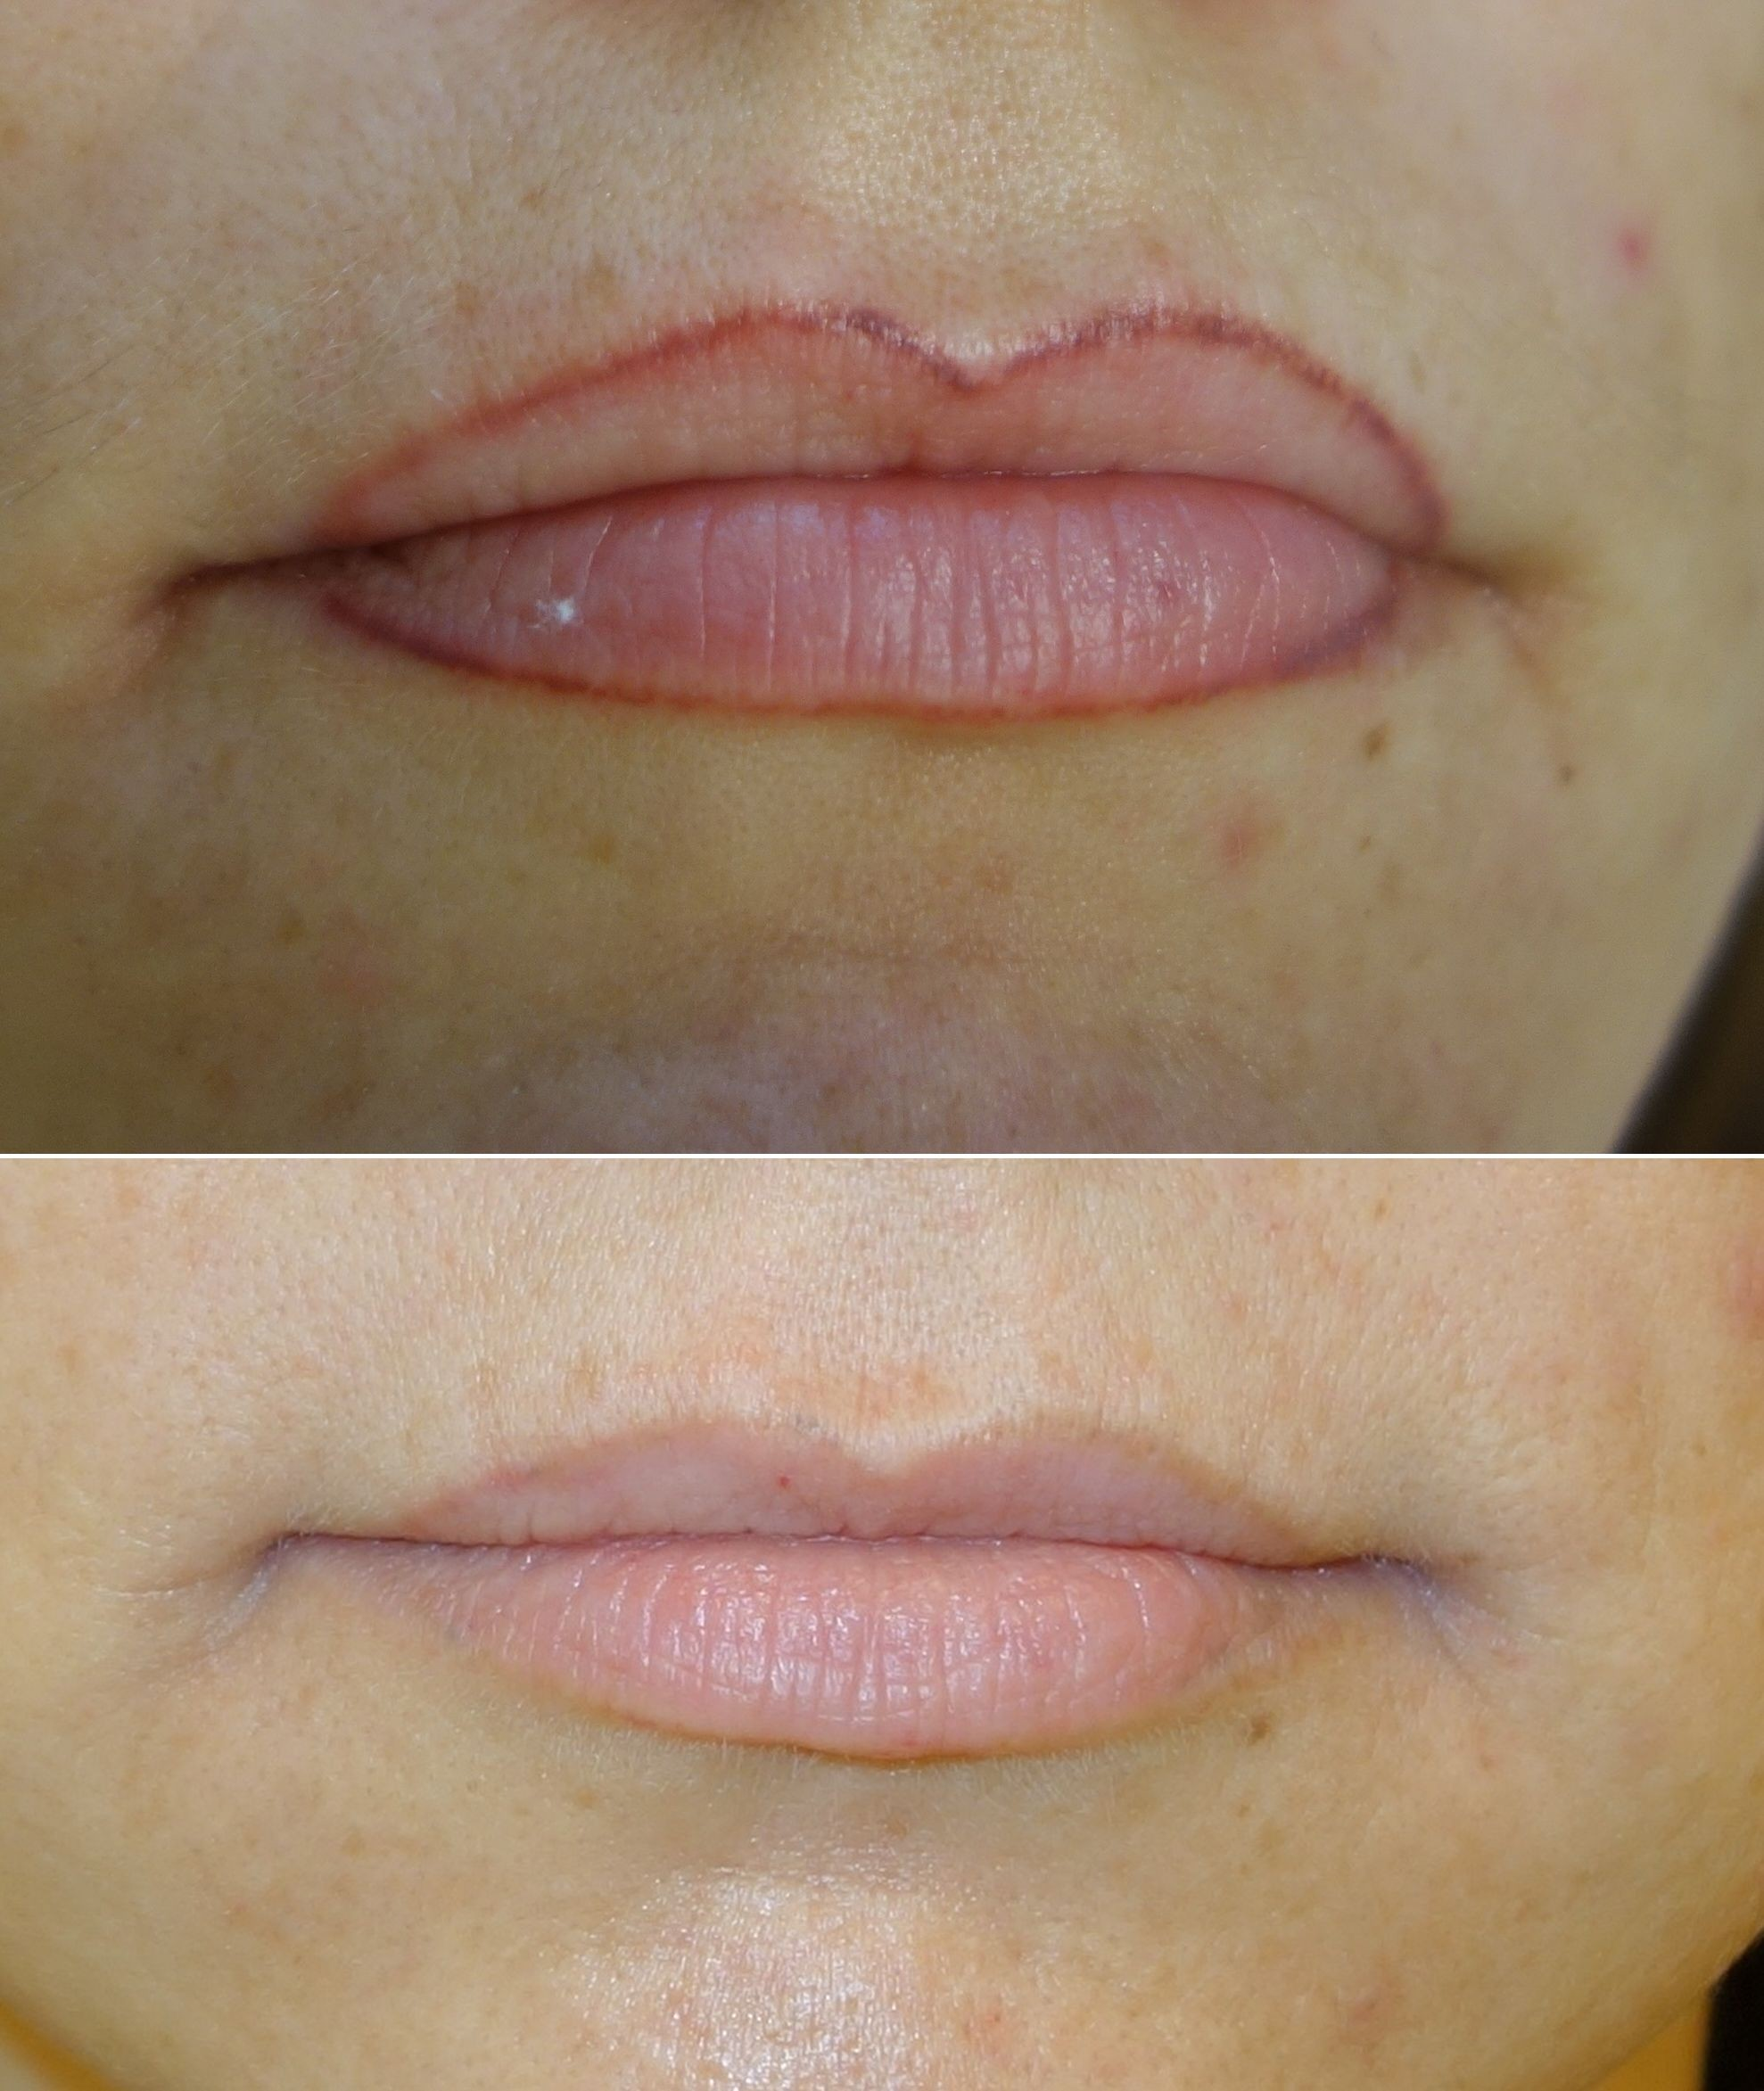 Laser removal as the main approach of defective permanent make up and tattoo correction.